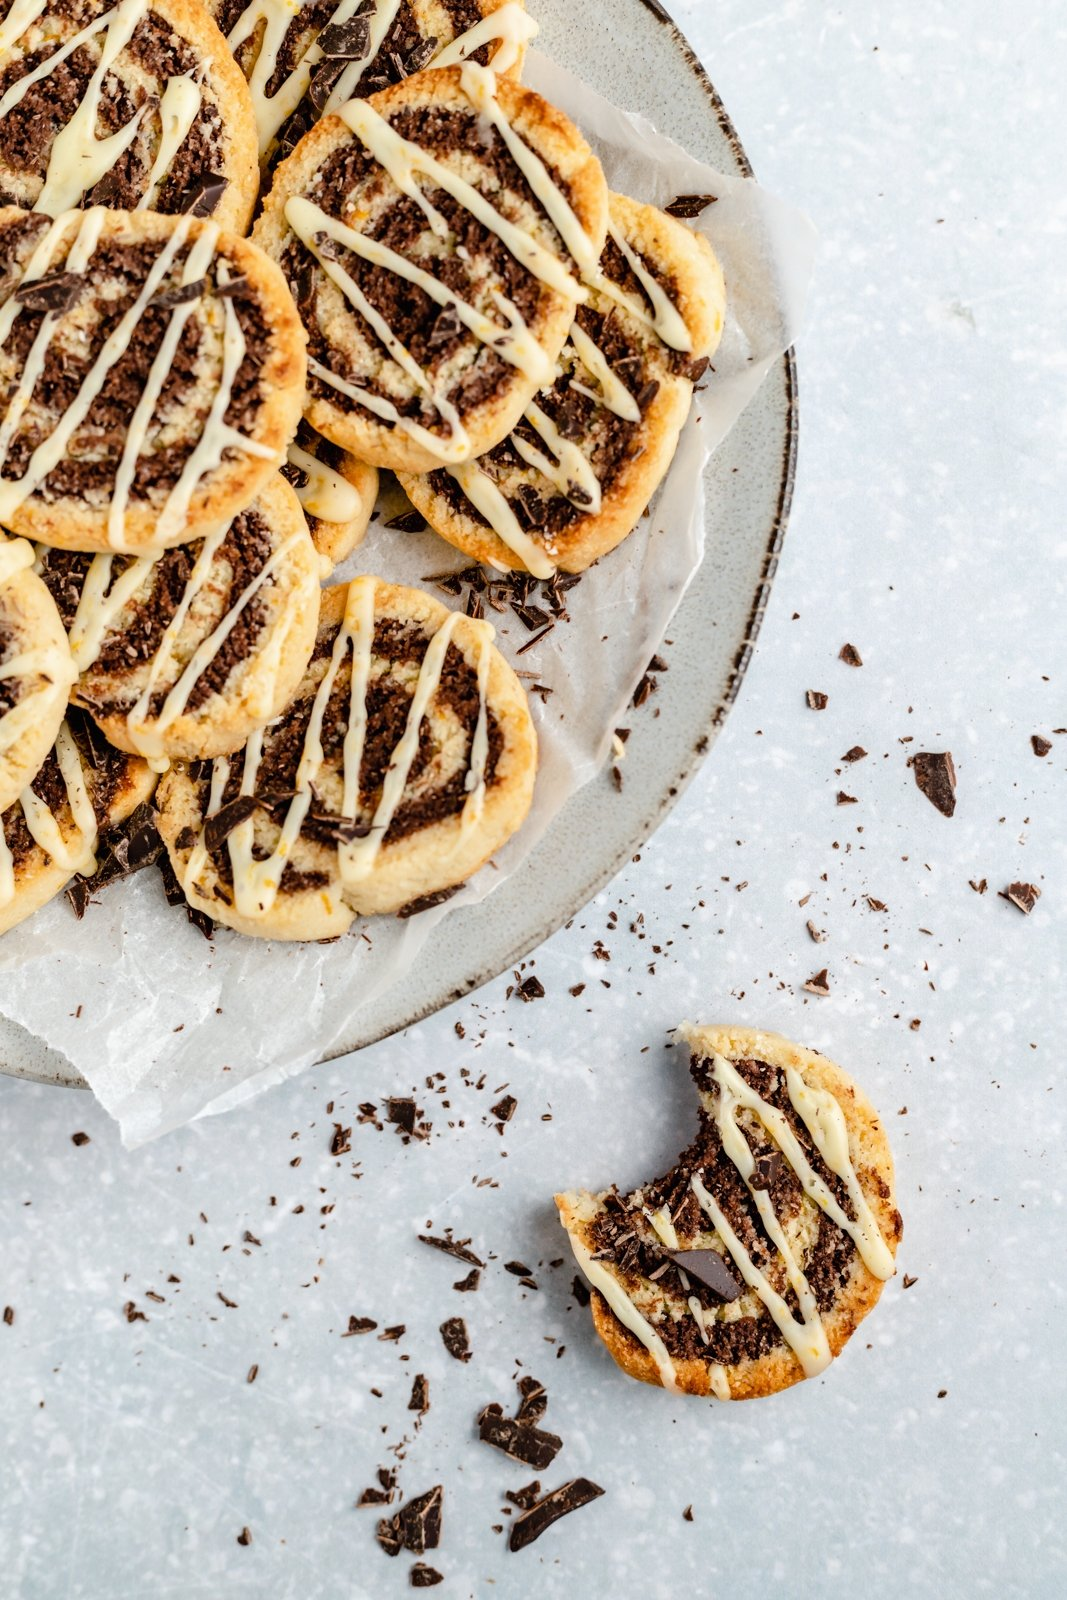 orange chocolate pinwheel cookies on a plate